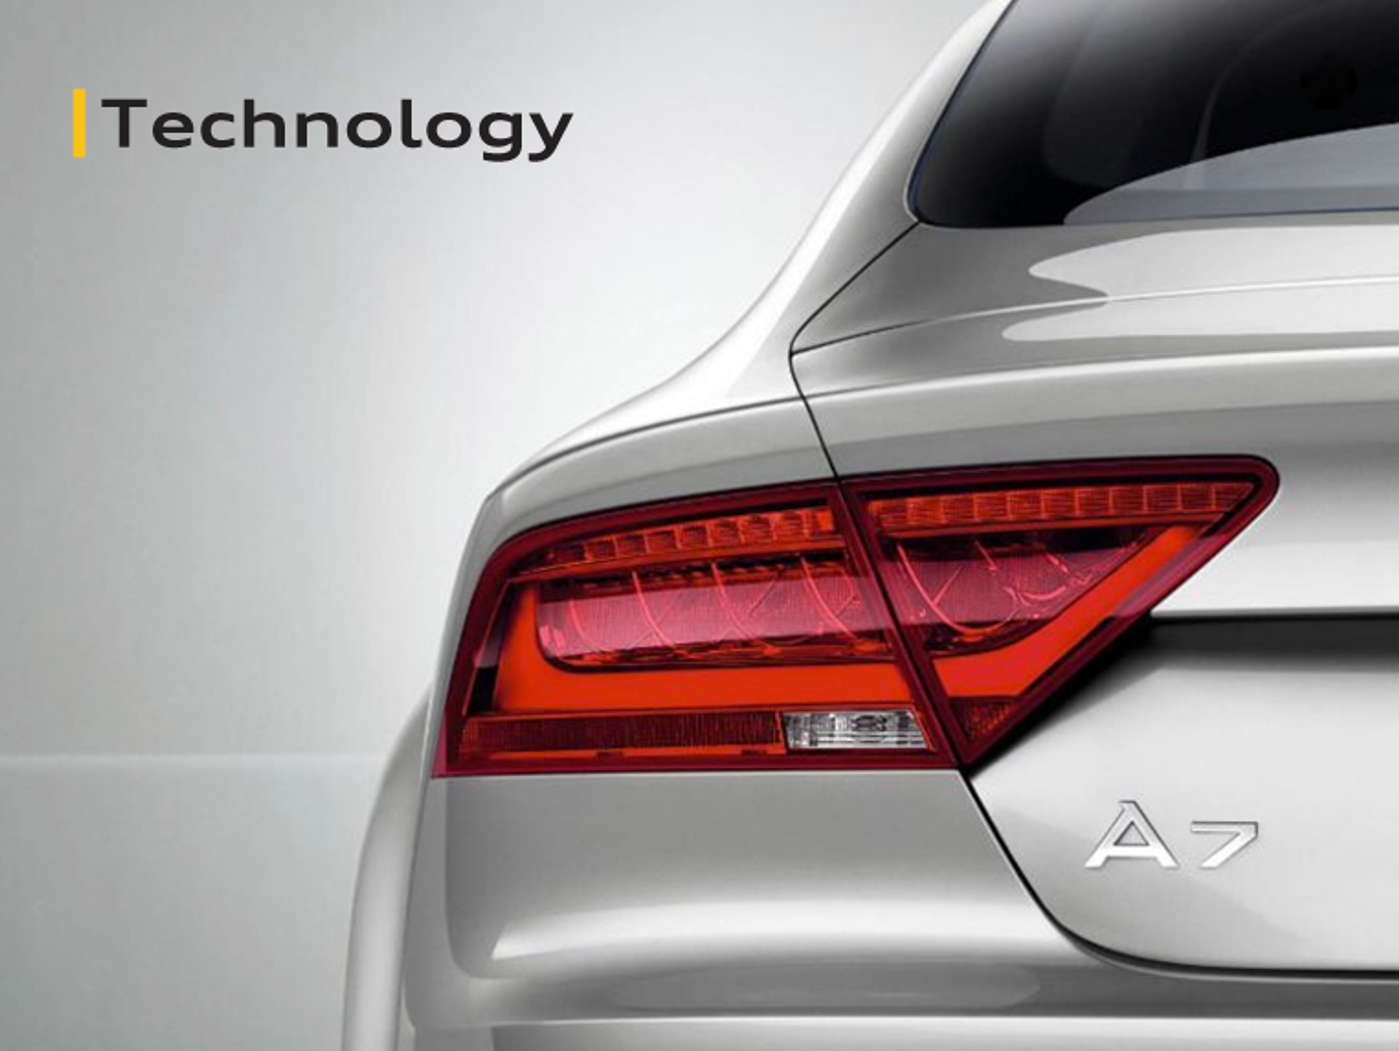 audi ppt Presentation courses powerpoint courses by linkedin learning  audi audi  bmw mb others company total amount (2012) total cars (2012) average sales  per month (2012) audi 285 cr 710 59 cars bmw 292 cr 725.